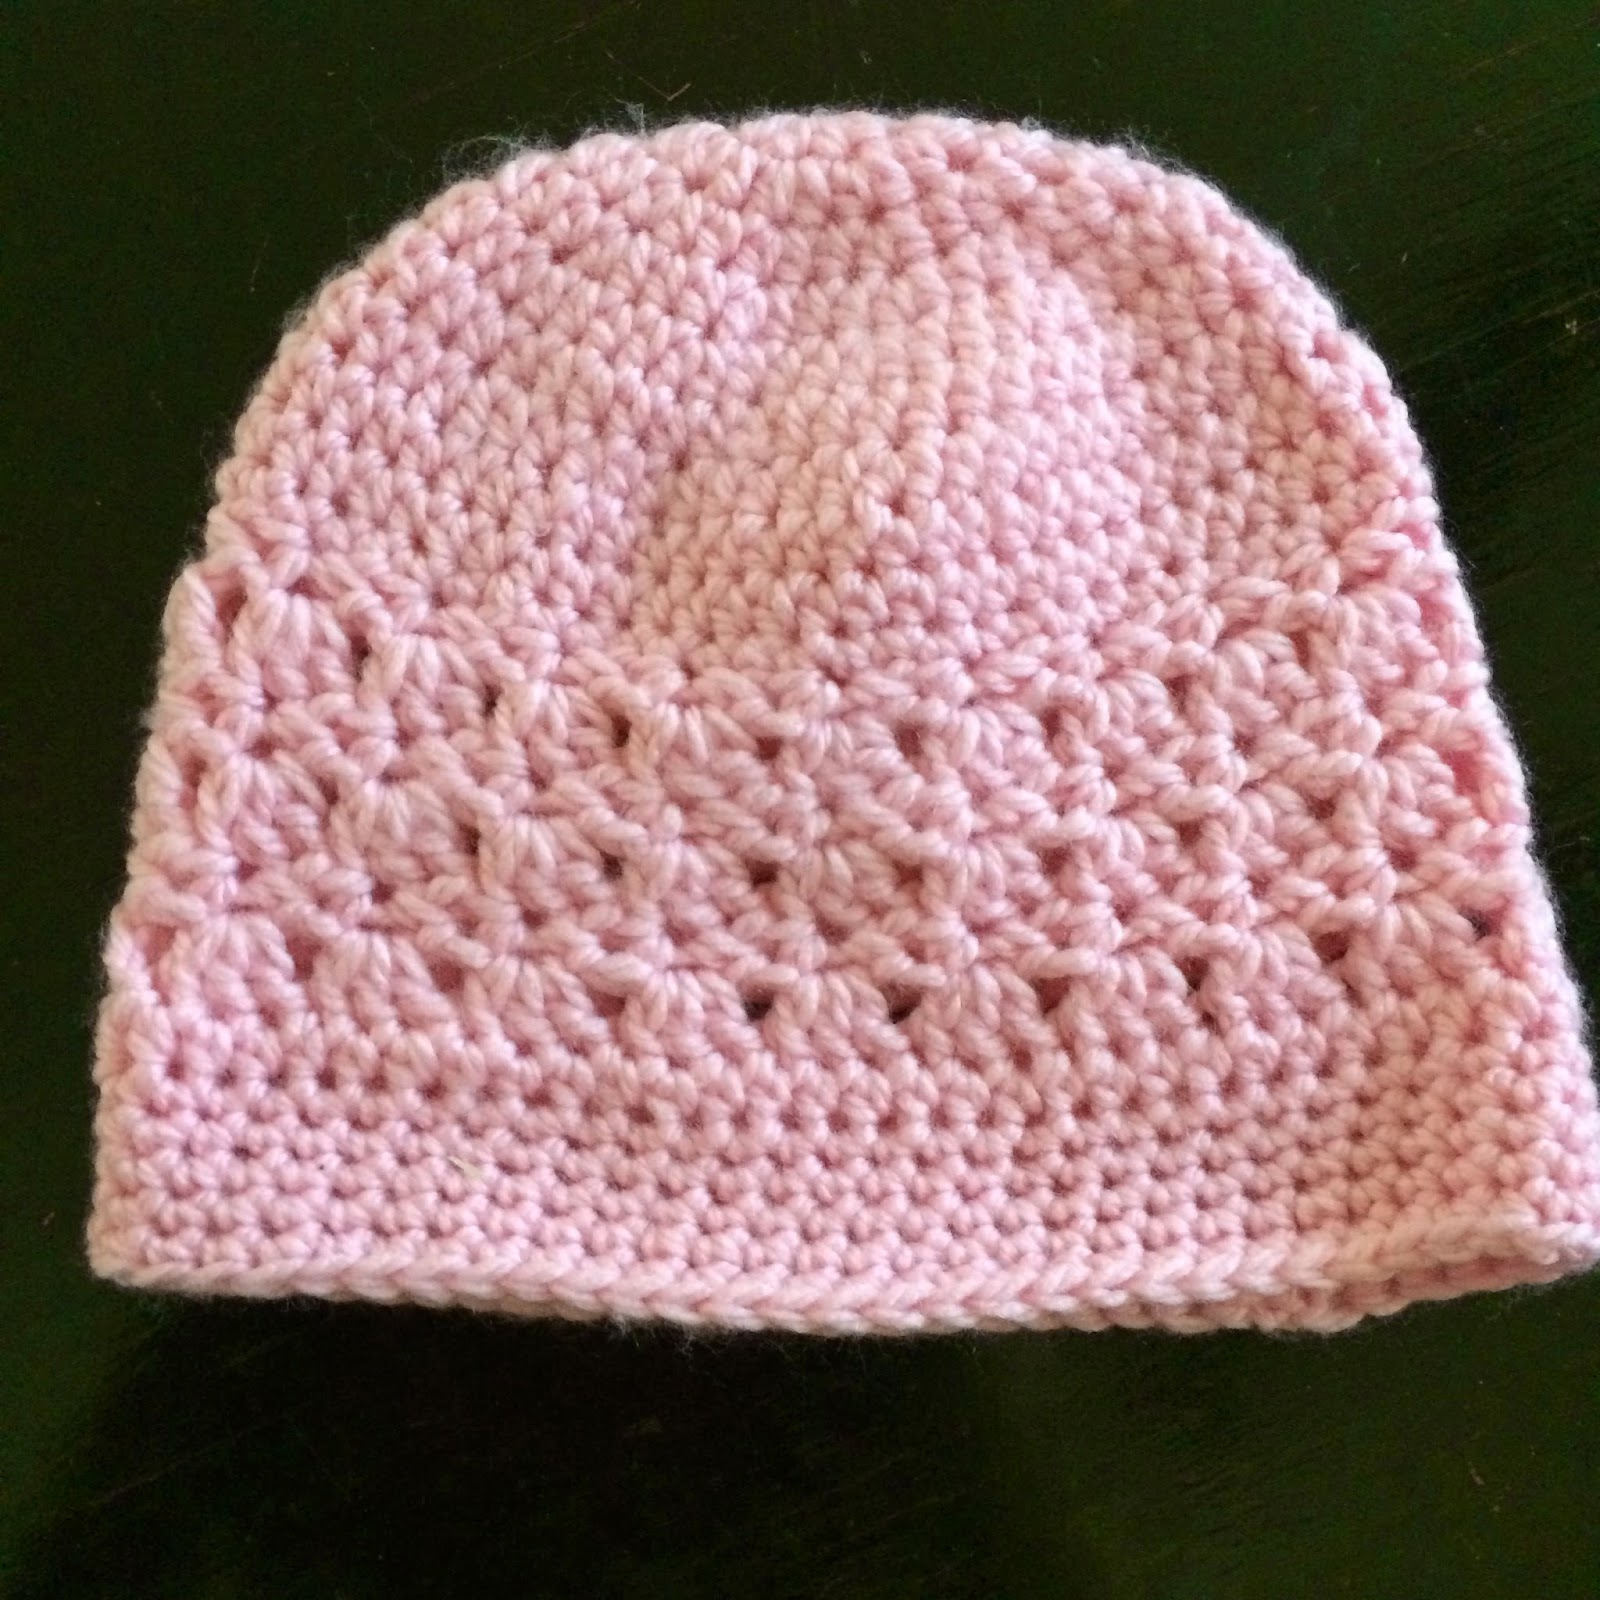 Crochet Chemo Cap - Free Pattern Not My Nanas Crochet!